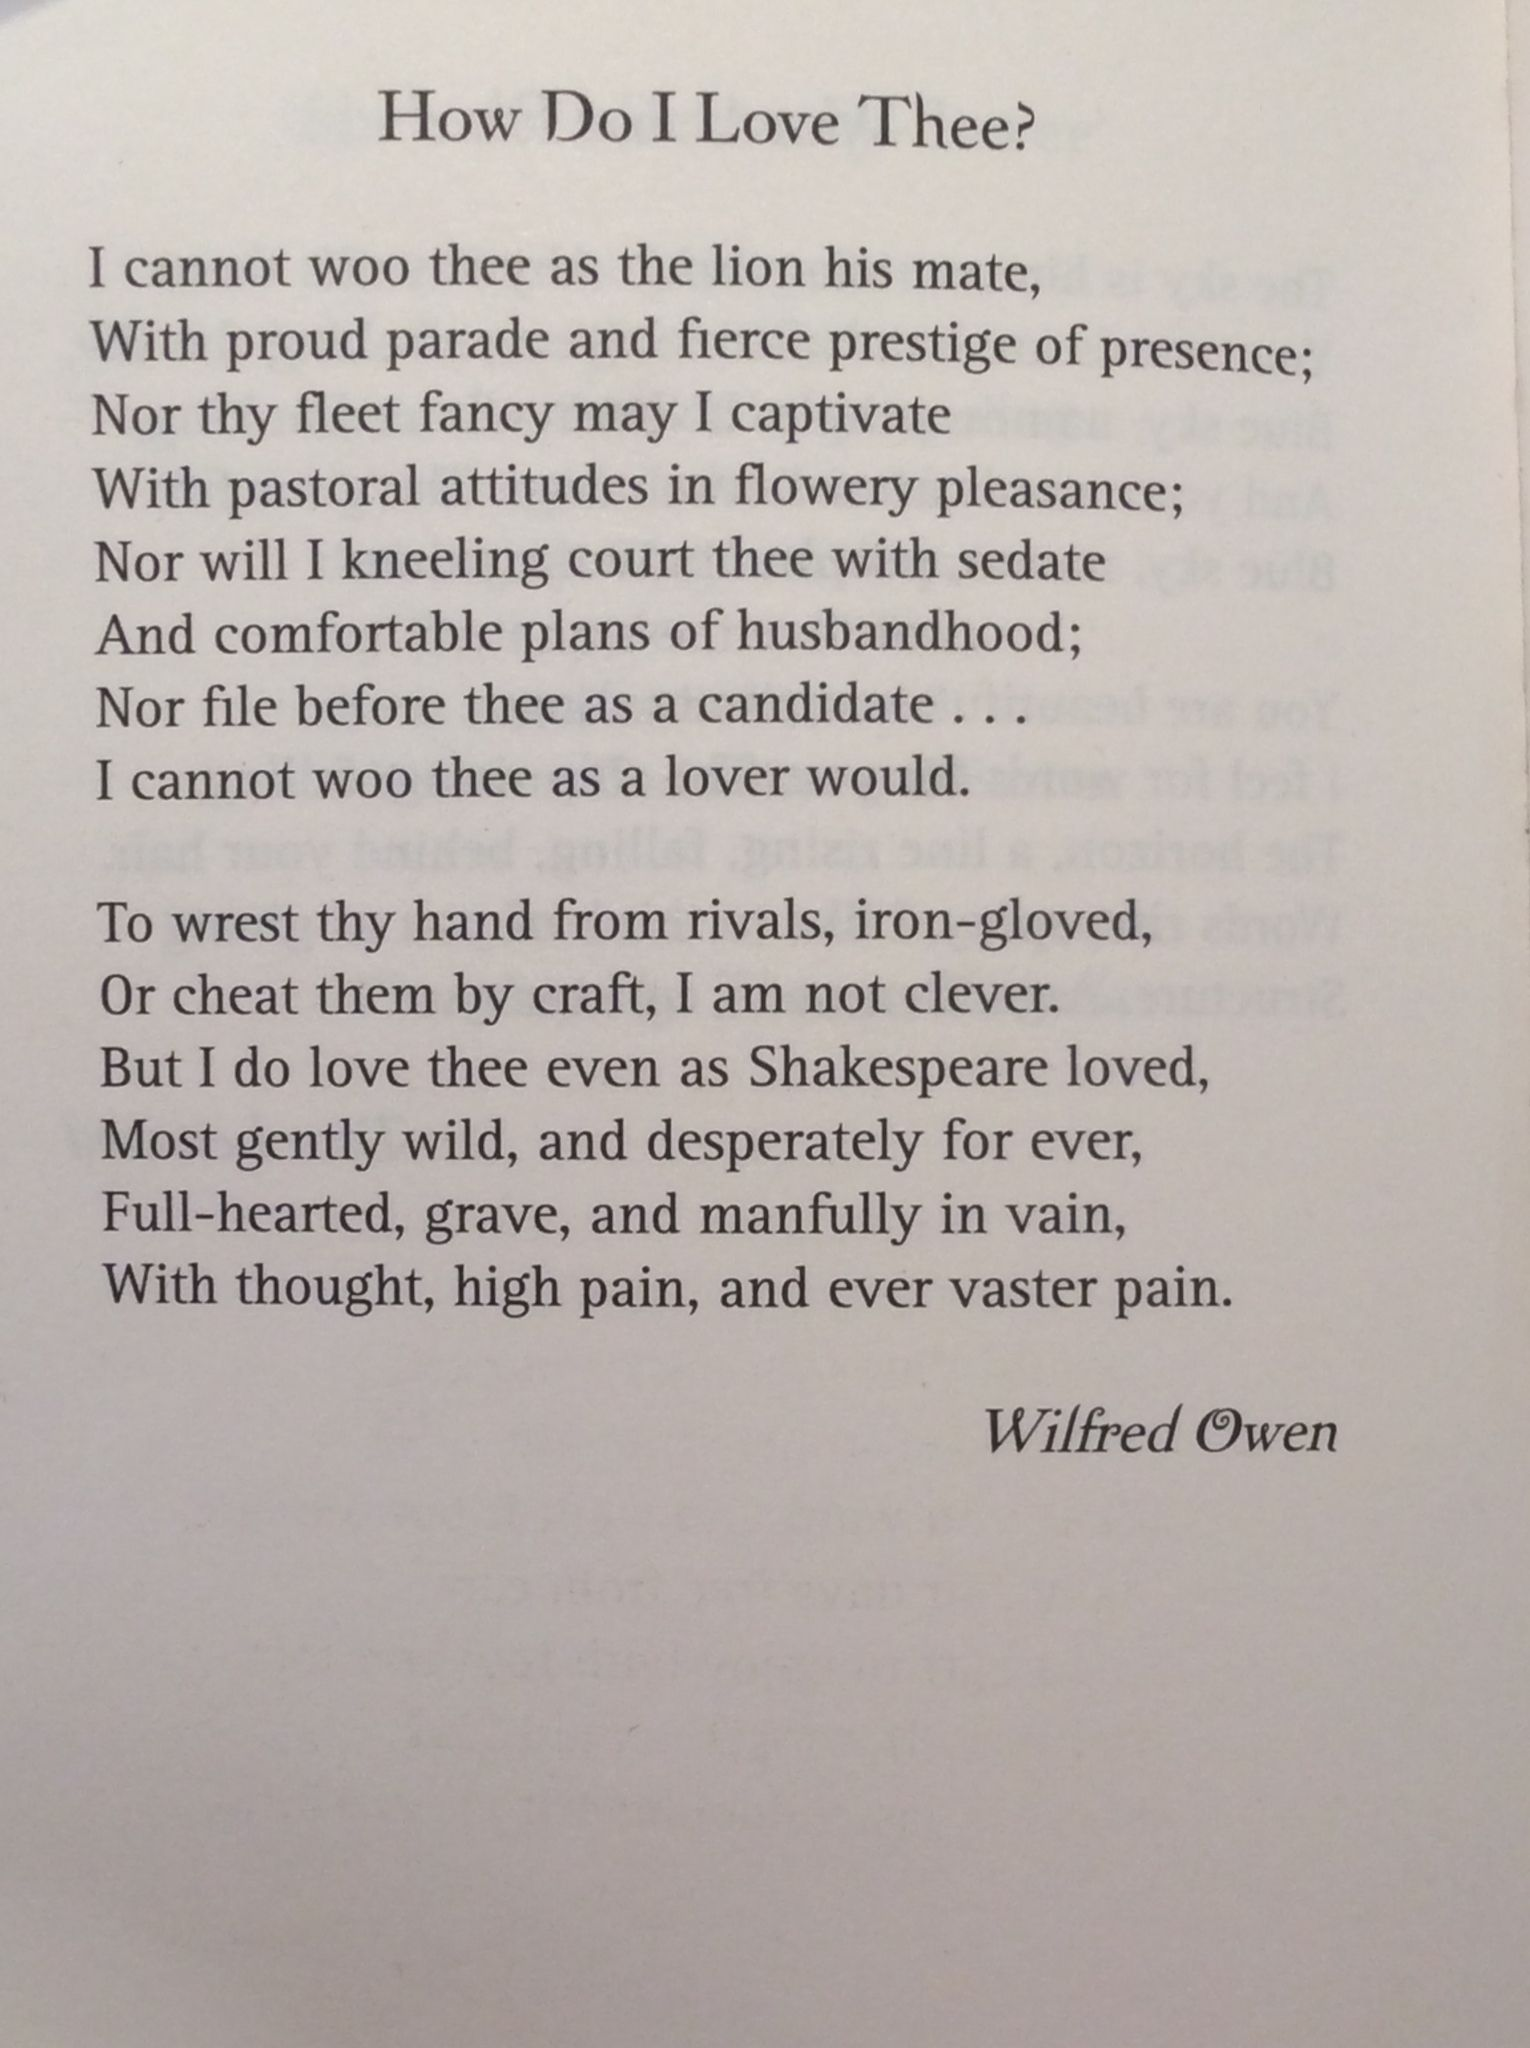 about wilfred owens poetry life Wilfred owen, who wrote some of the best british poetry on world war i,  only  five poems were published in his lifetime—three in the nation and two that.